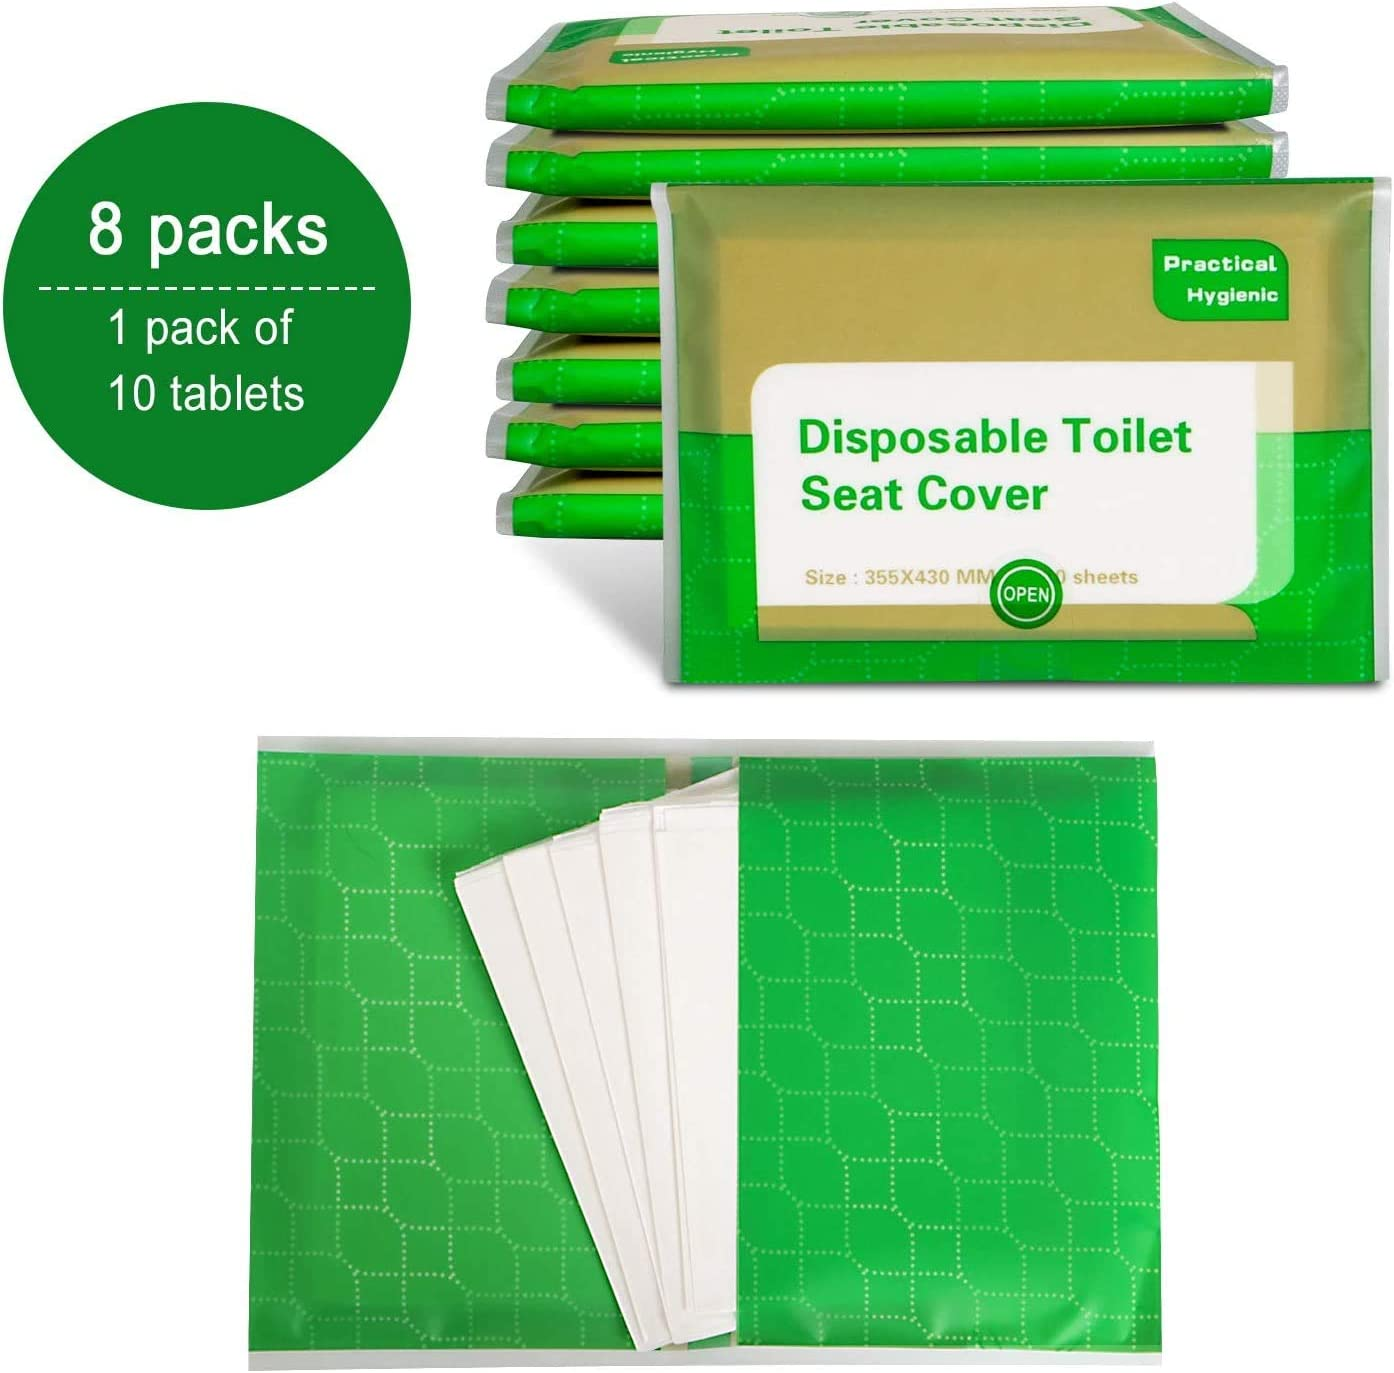 80-Count ,Portable Travel Size Bath Covers for Adults Kids,Bio-Degradable Materials Seat Covers Toilet Seat Covers Disposable,8 Packs